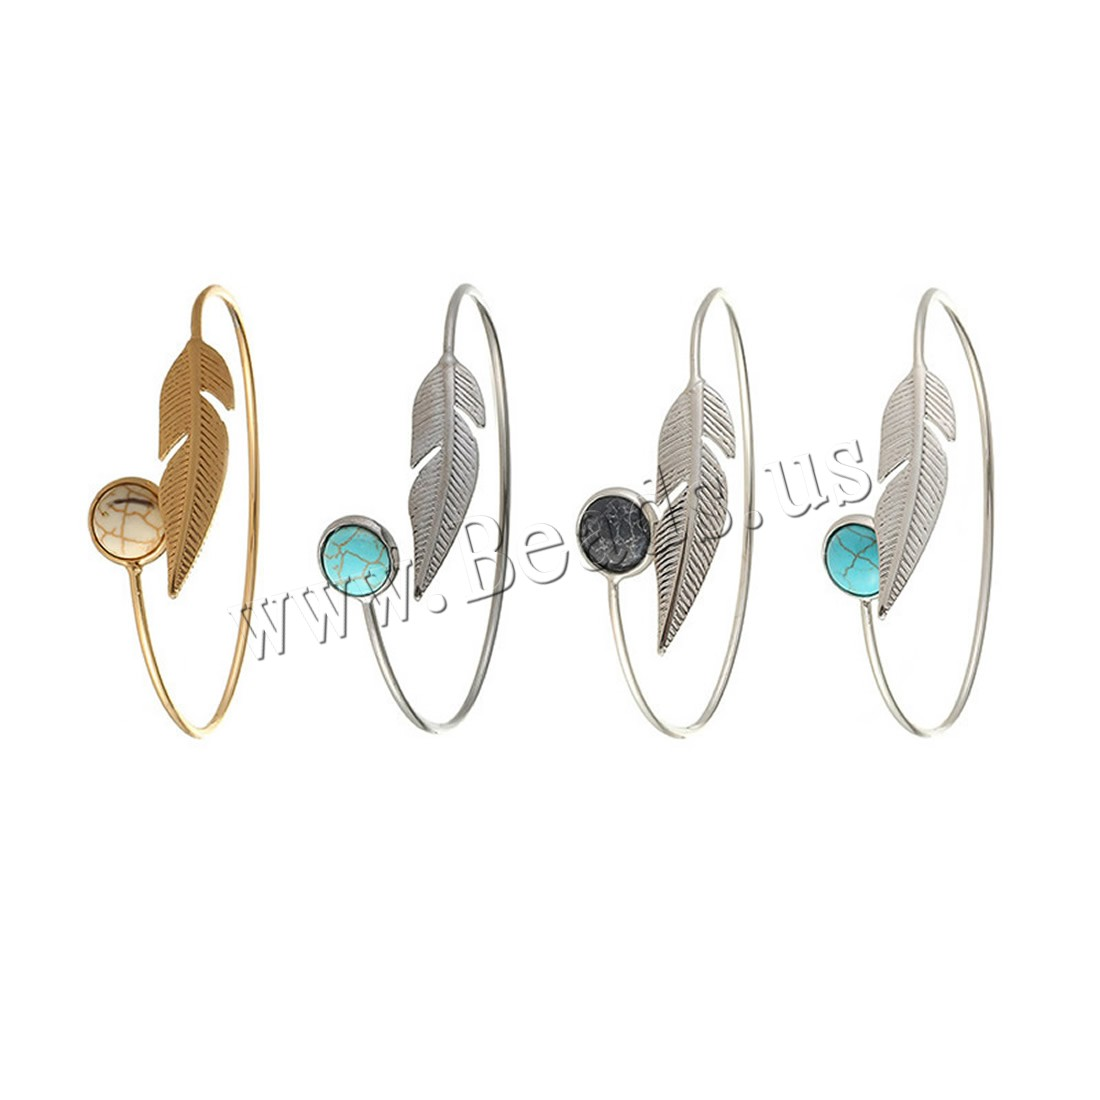 Buy Zinc Alloy Bangle Turquoise Leaf plated adjustable & woman colors choice lead & cadmium free 17mm Inner Diameter:Approx 61mm Length:Approx 7.5 Inch Sold PC